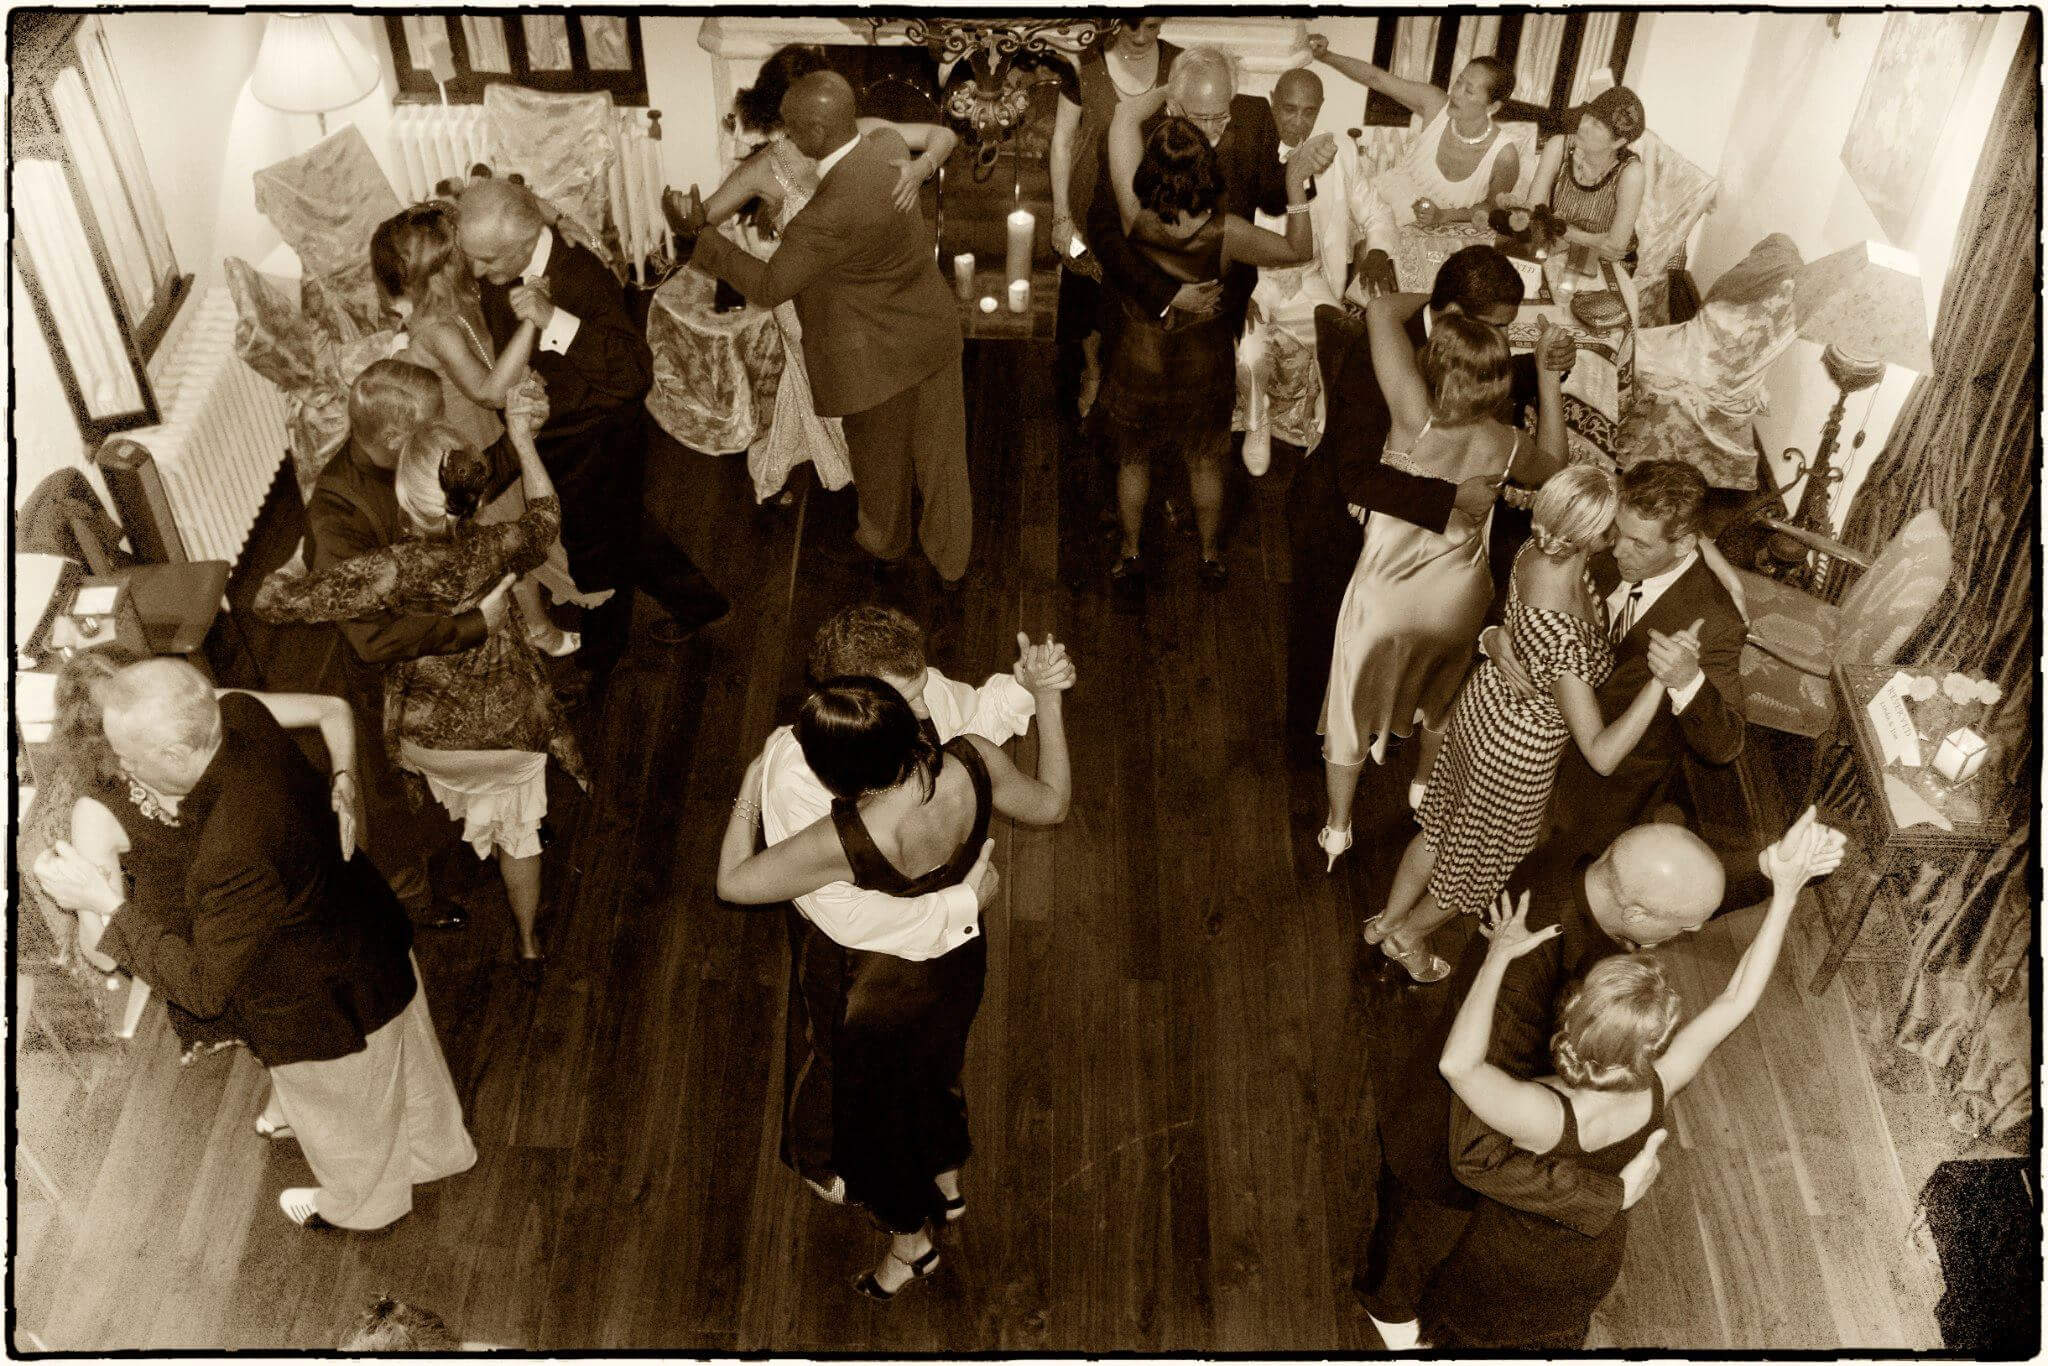 able tango party in 1930' style organized by Bana.